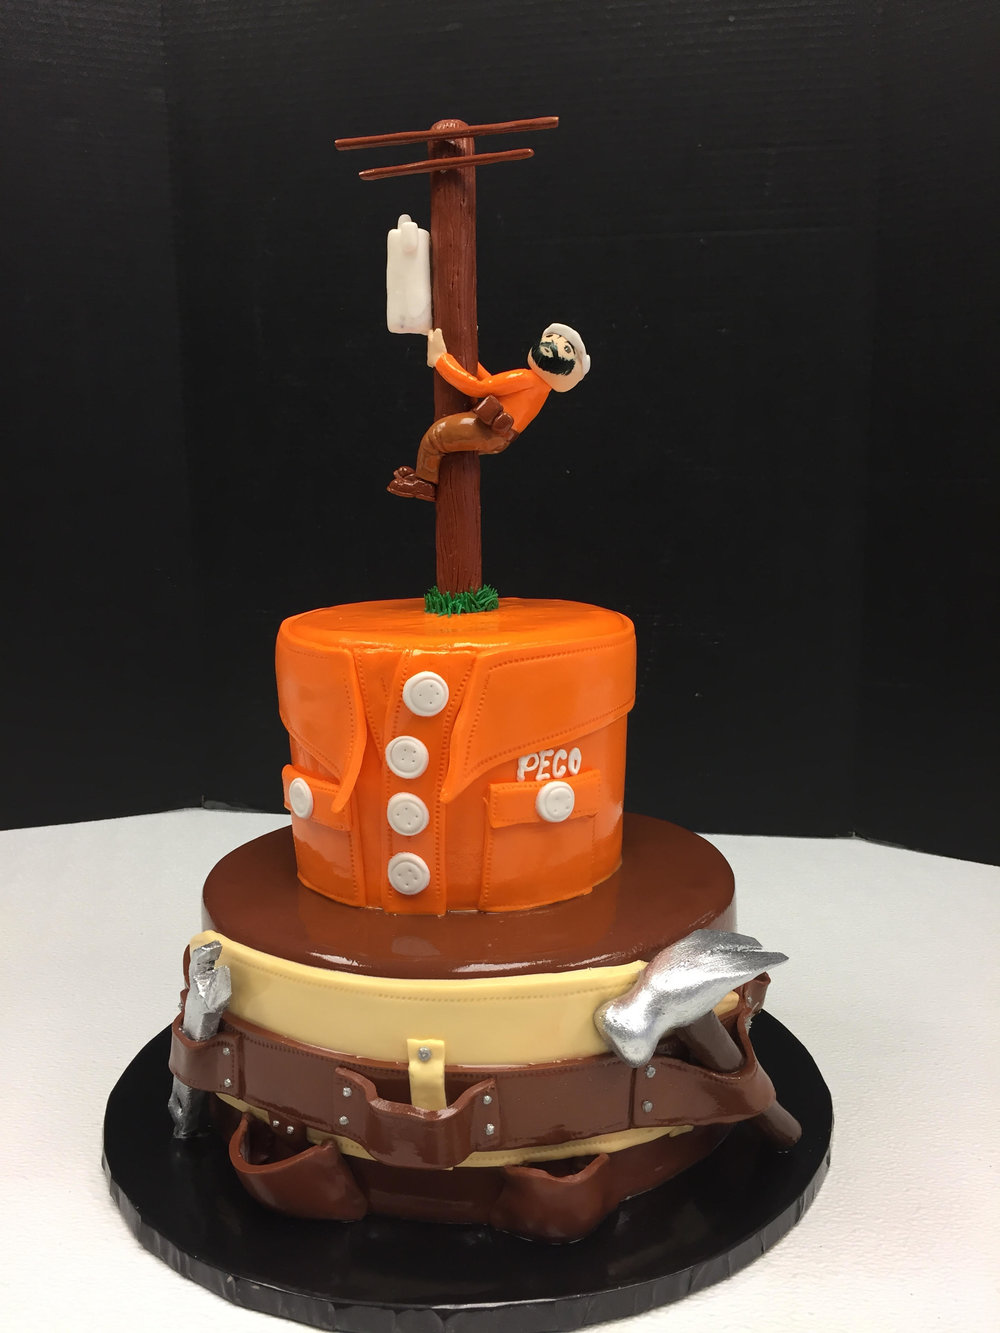 Just Another Day at Work Specialty Cake